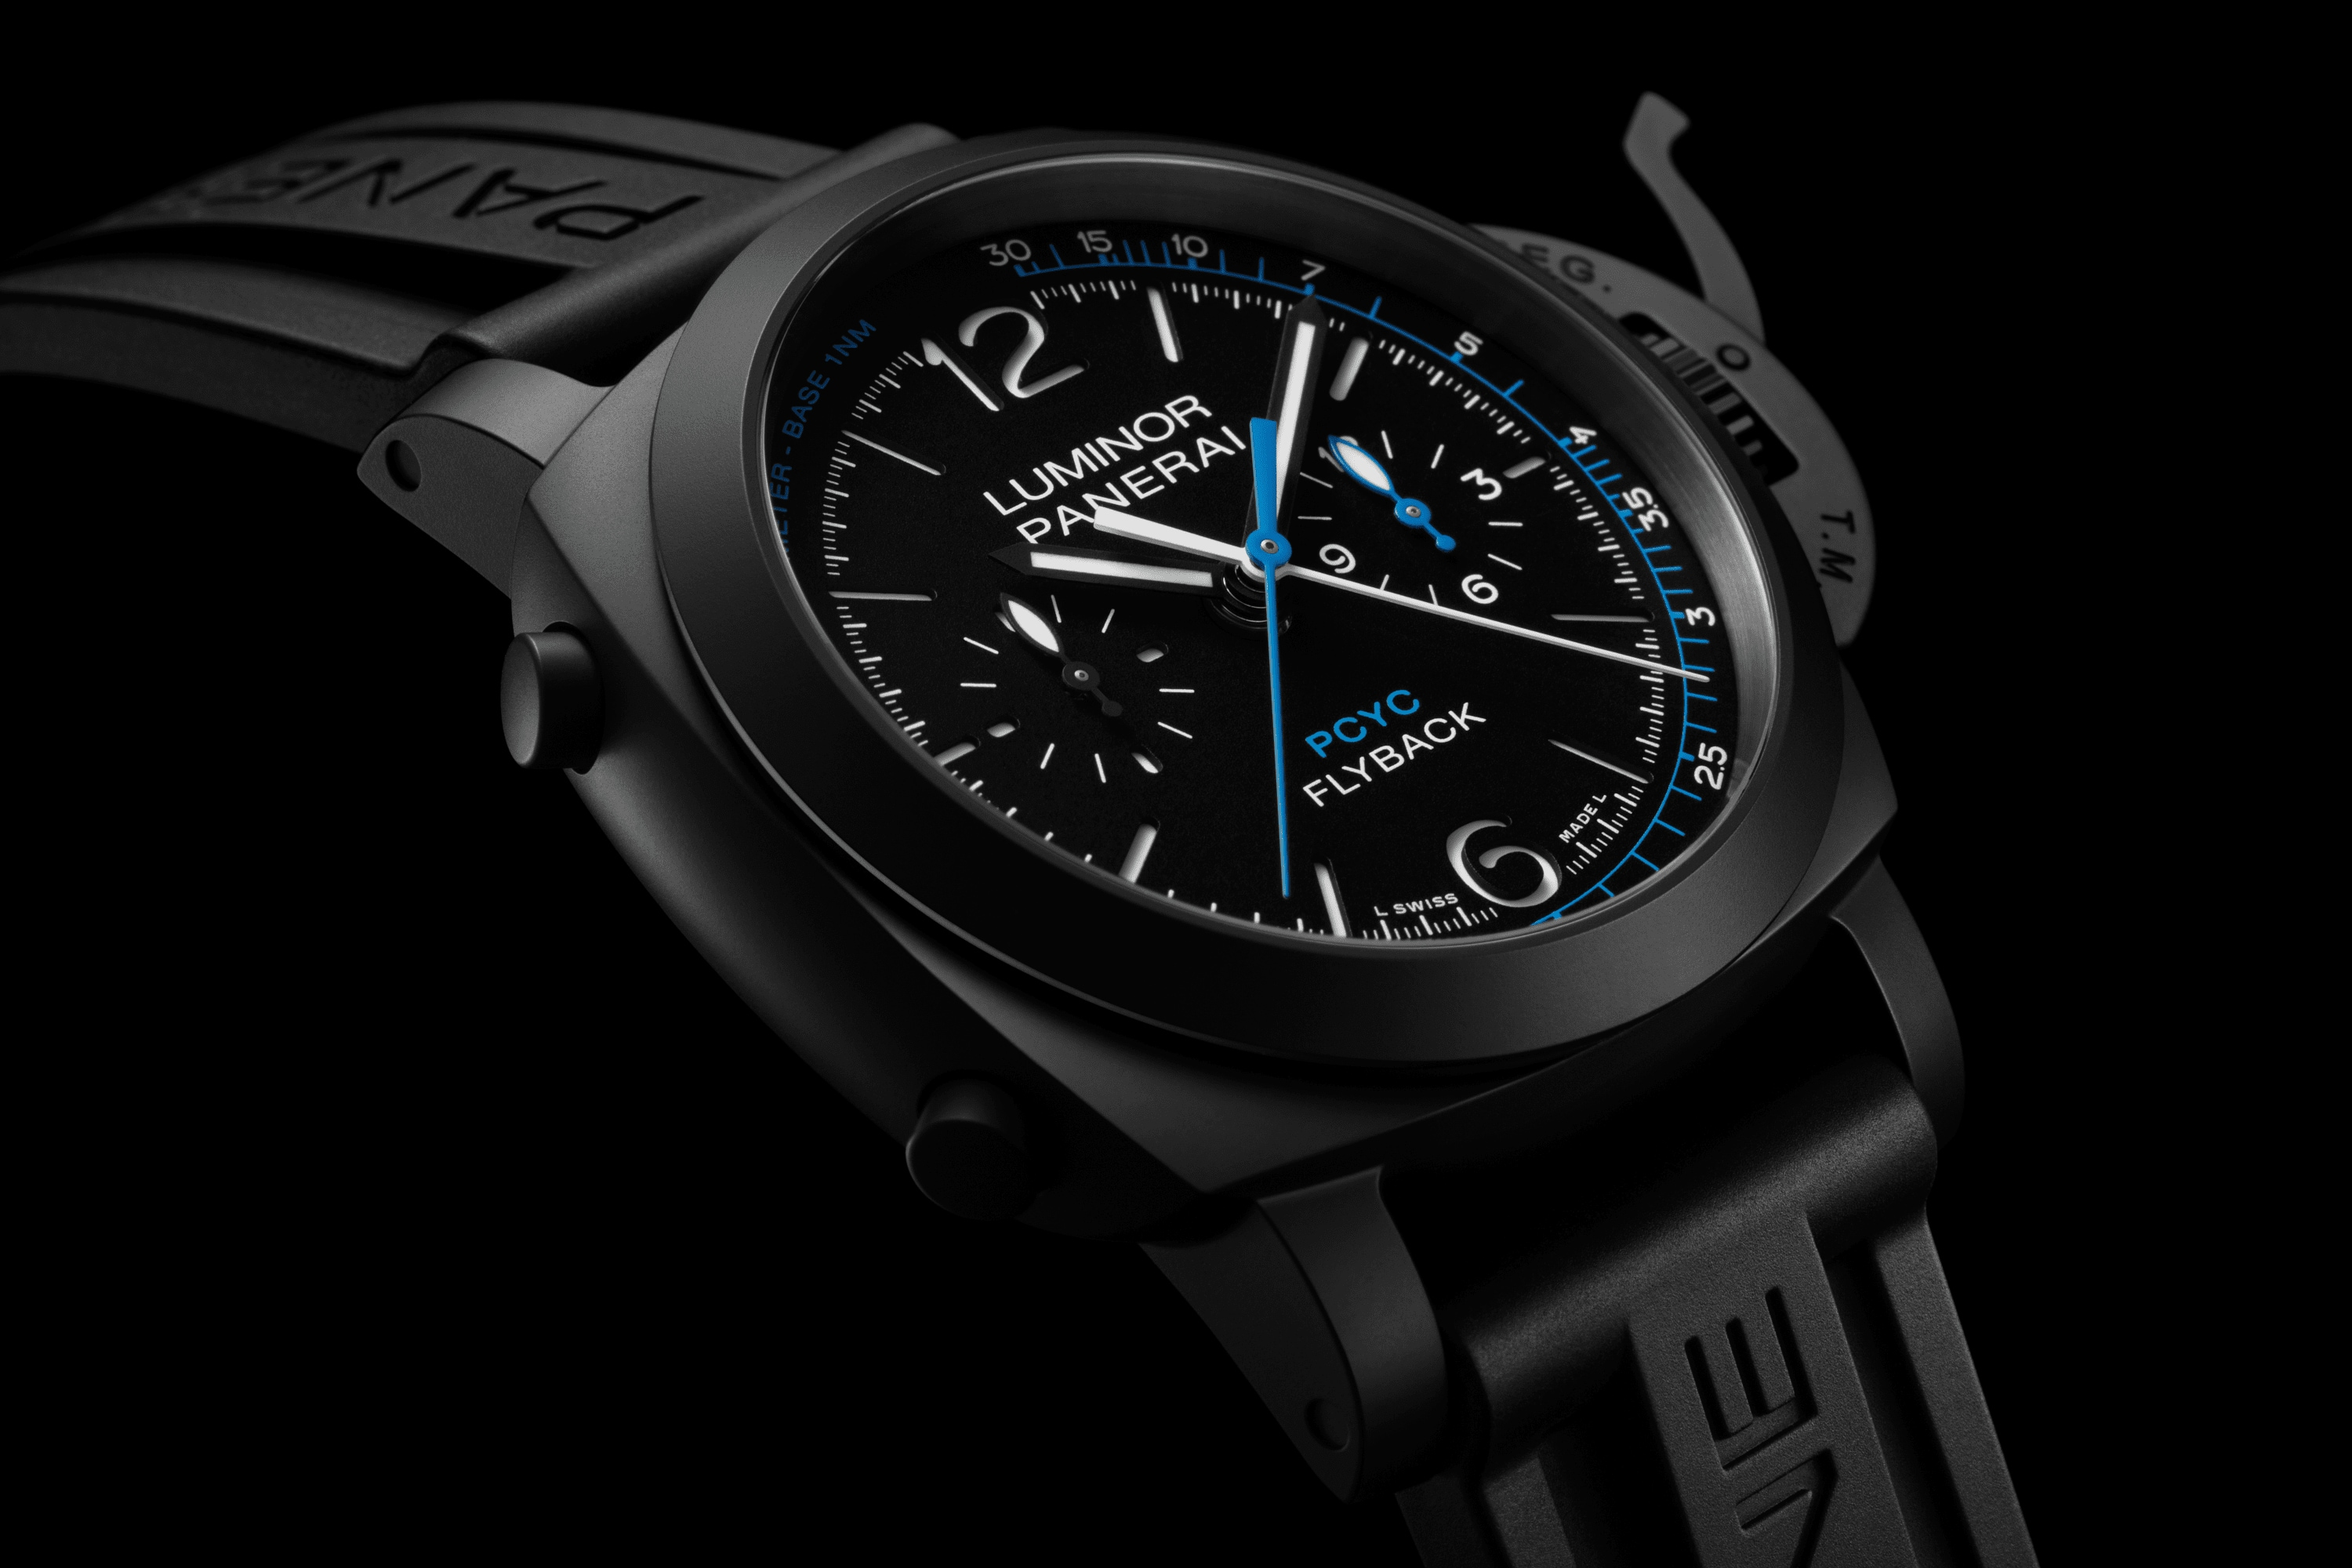 PNPAM00788 - Luminor Yachts Challenge - 44mm